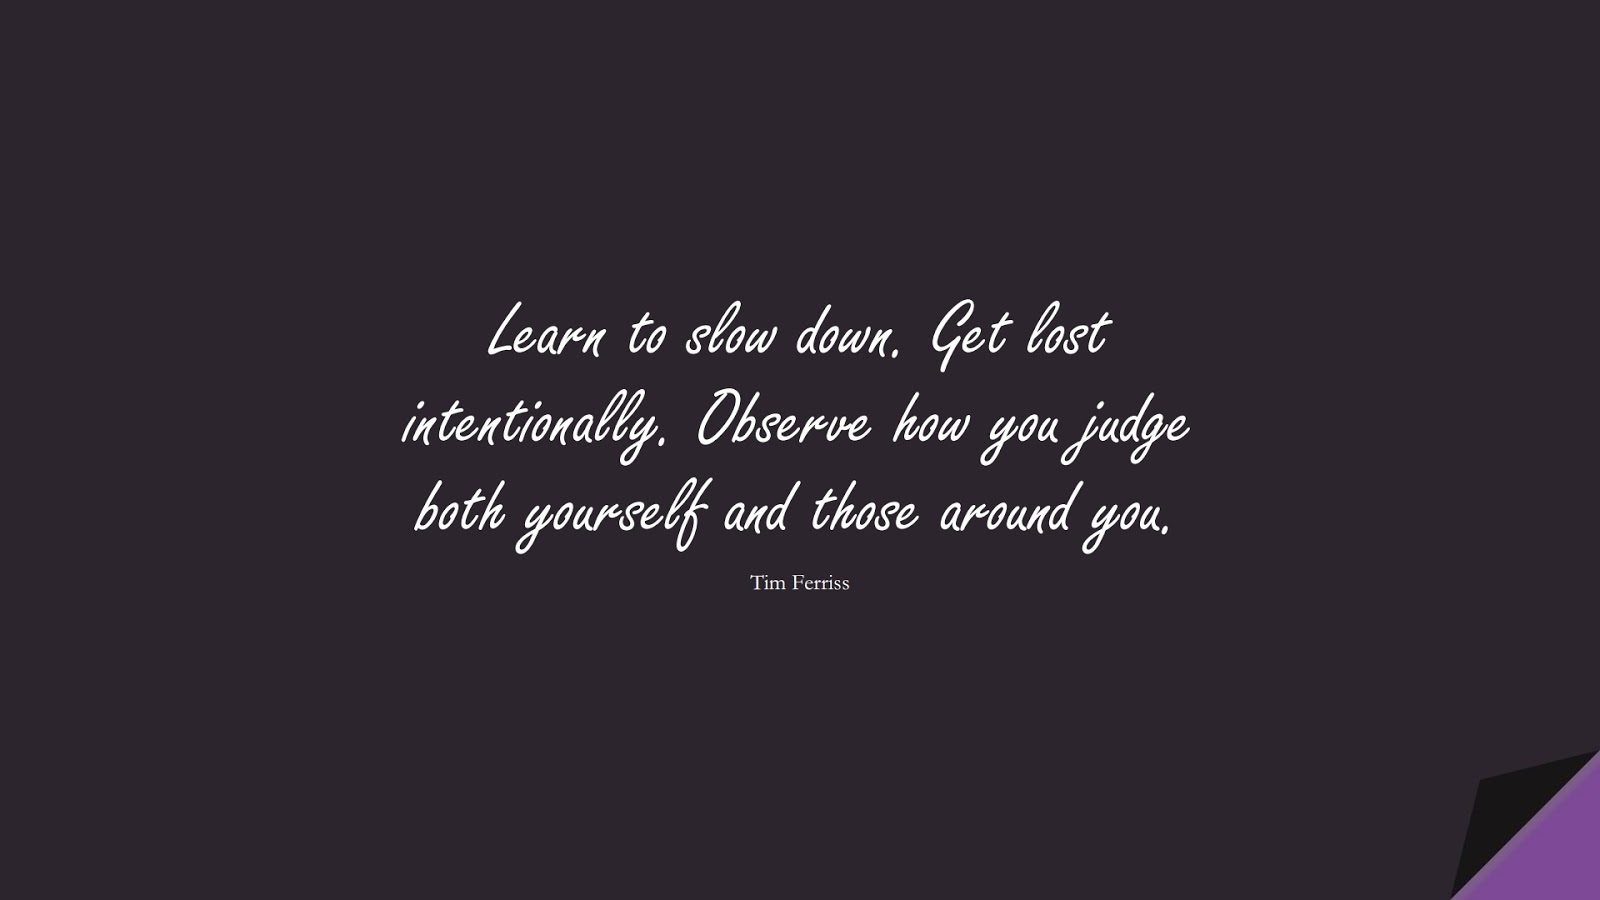 Learn to slow down. Get lost intentionally. Observe how you judge both yourself and those around you. (Tim Ferriss);  #TimFerrissQuotes